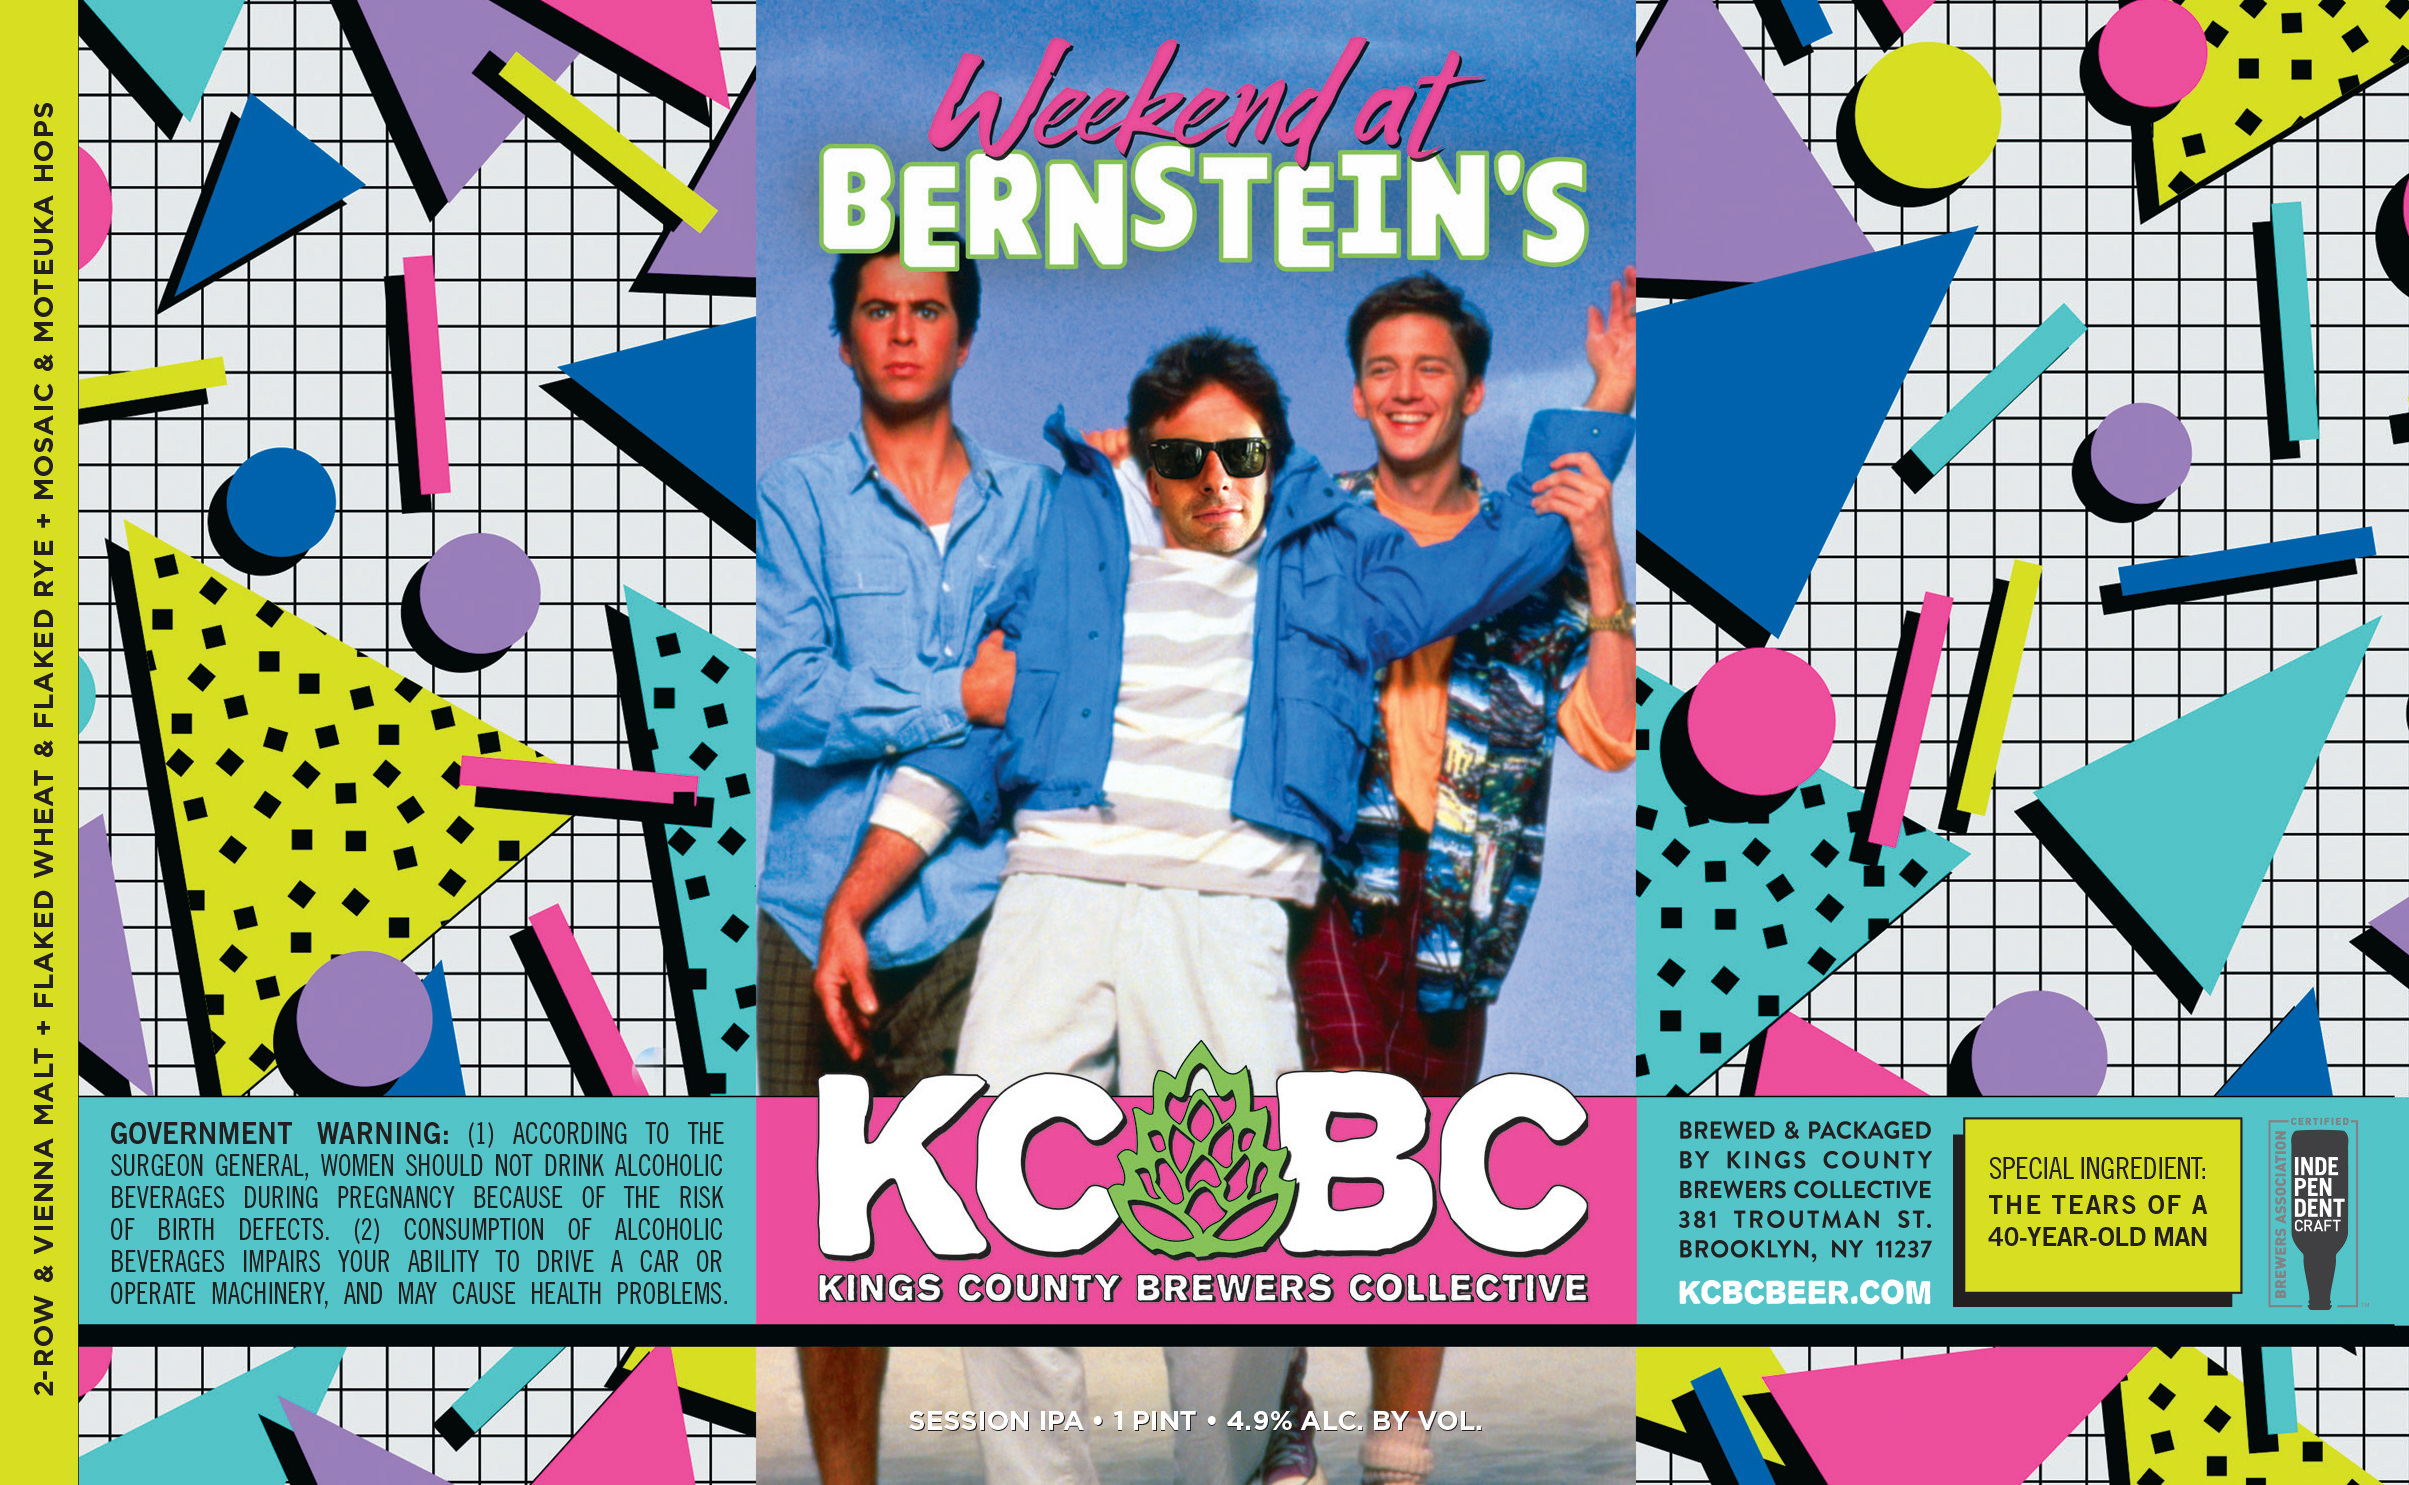 Weekend at Bernstein's custom beer label design - full label